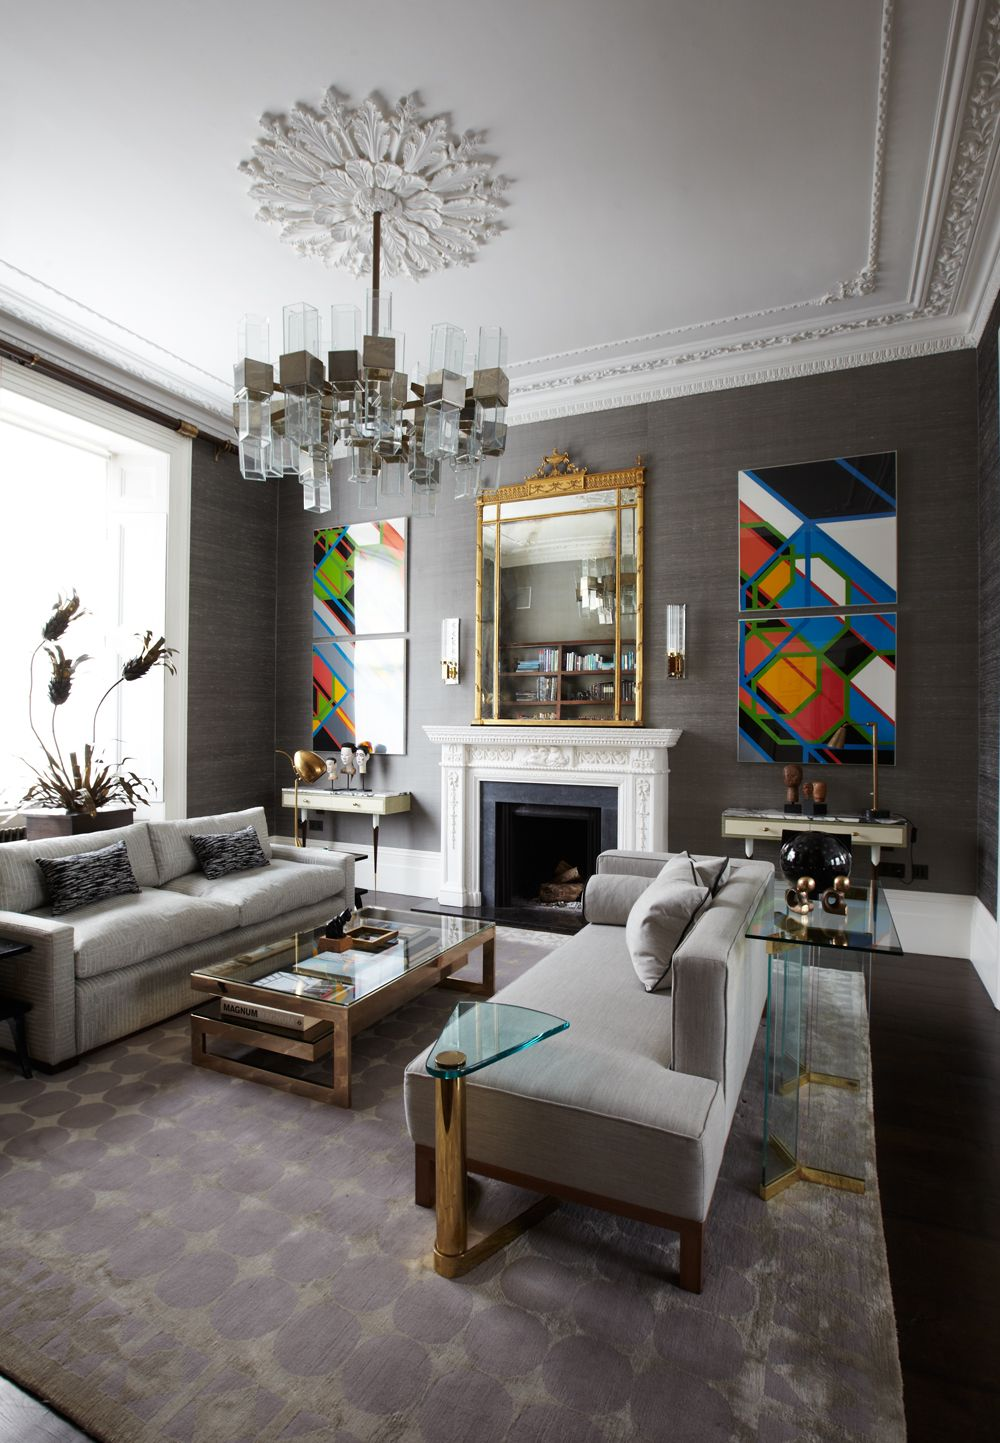 Living Room Interior Design: Pemberton Residence, London.